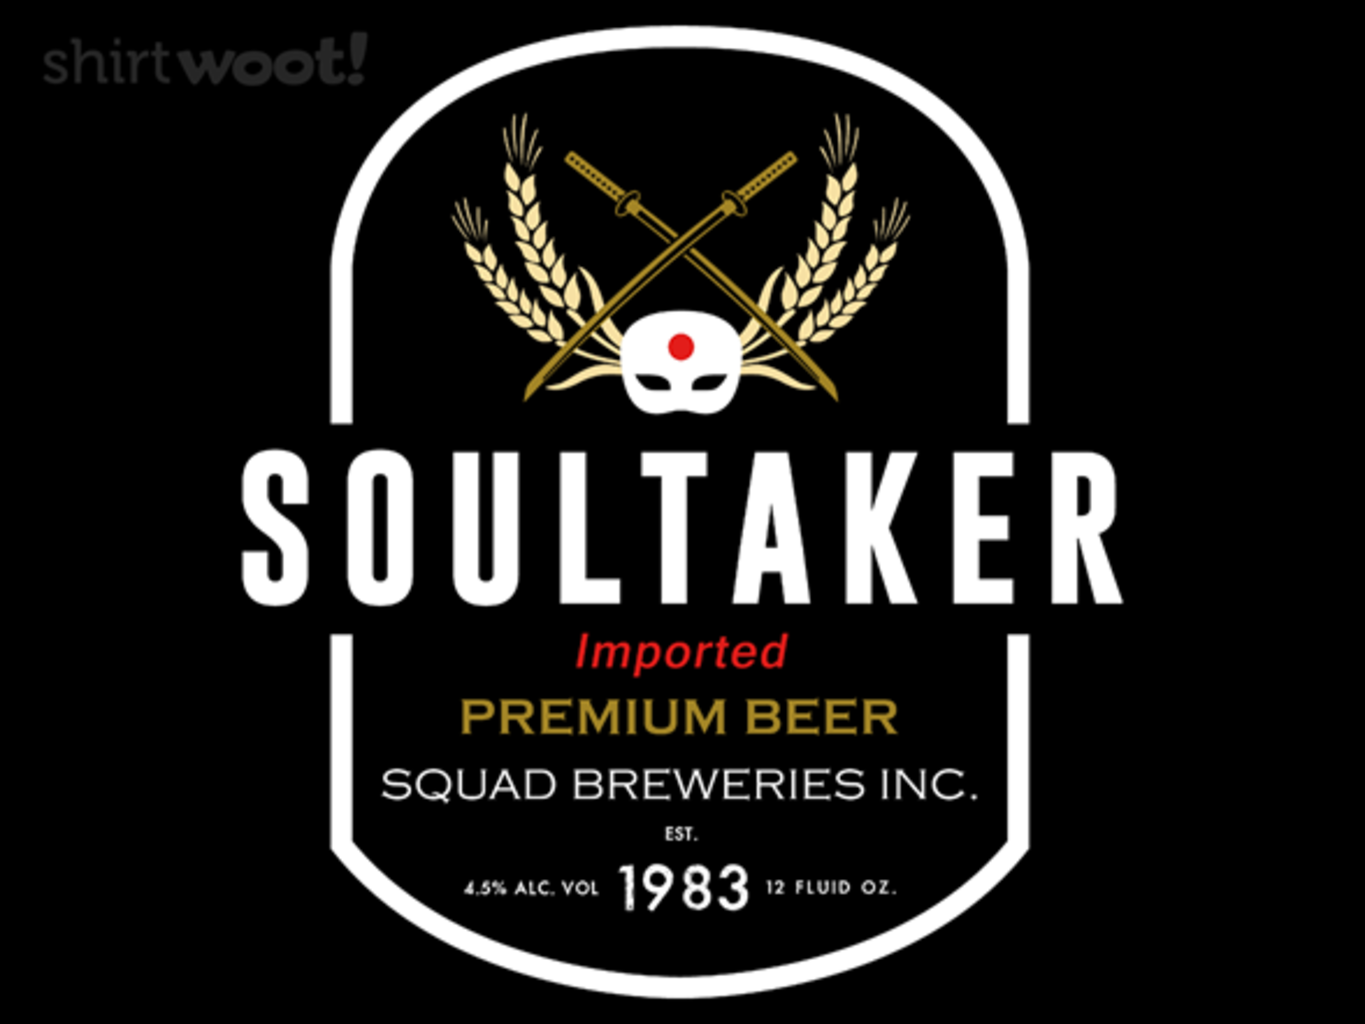 Woot!: Soultaker - Squad Breweries - $7.00 + $5 standard shipping